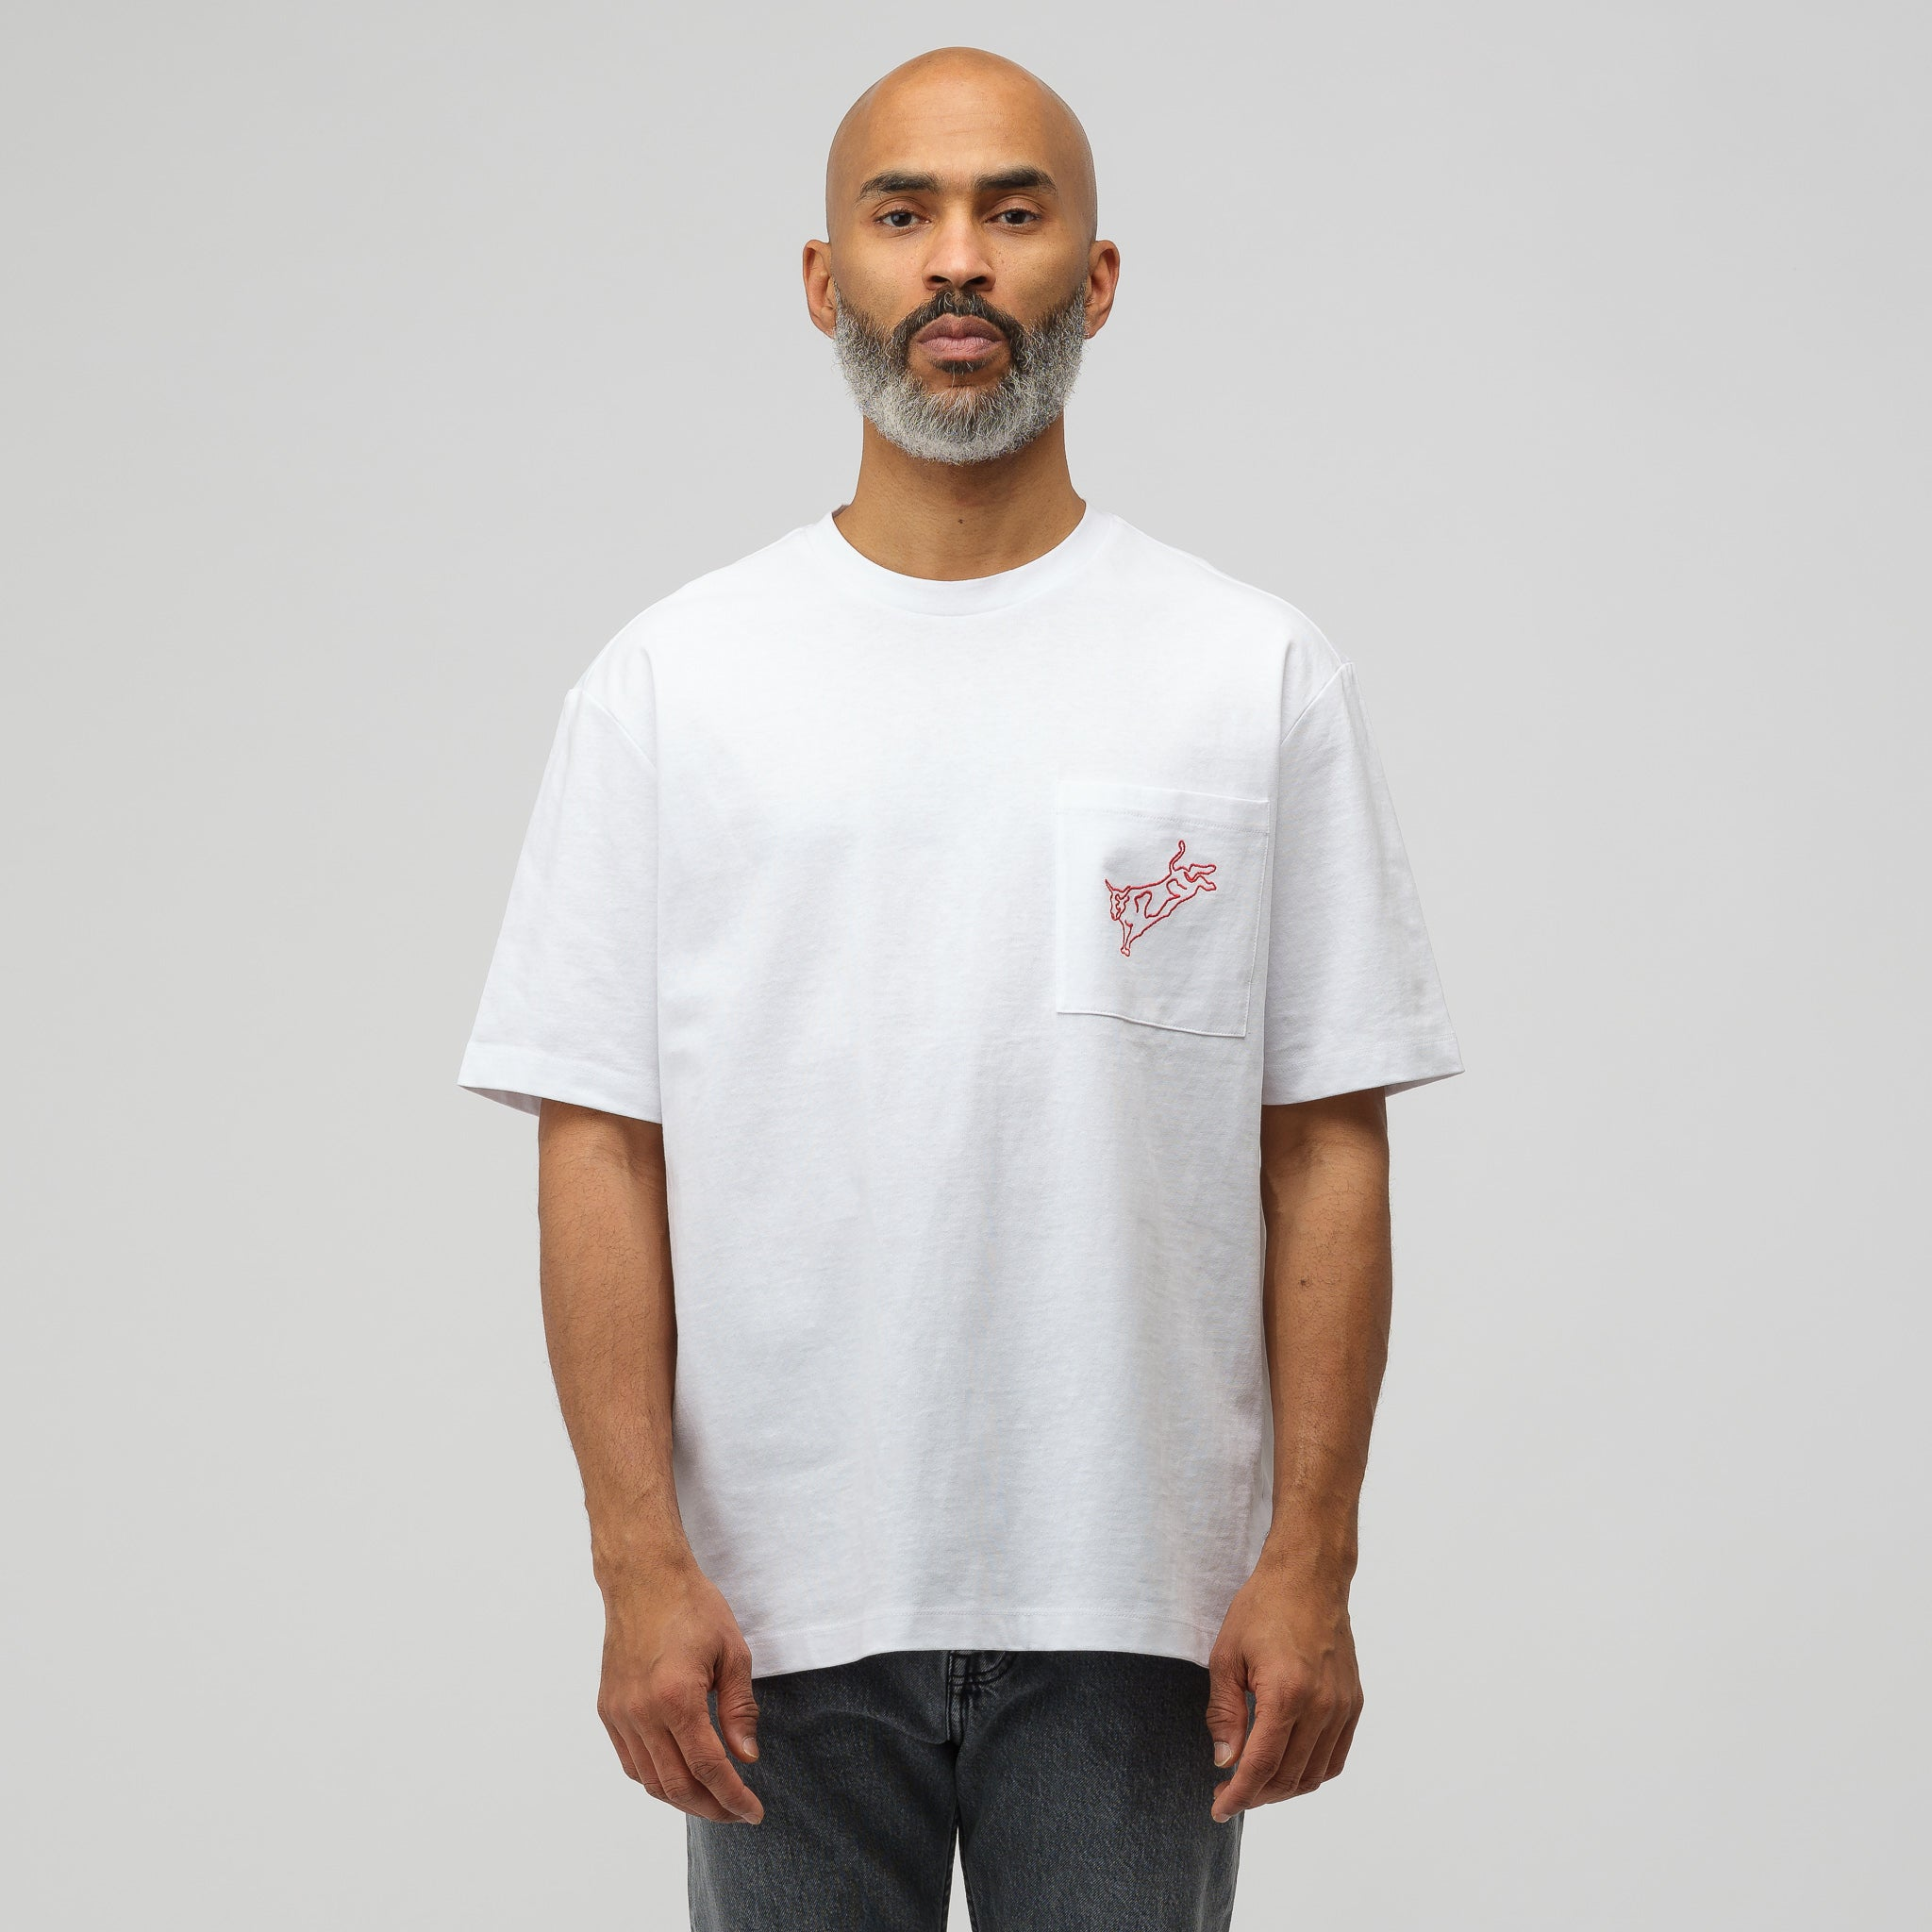 Modernist T-Shirt in White/Red